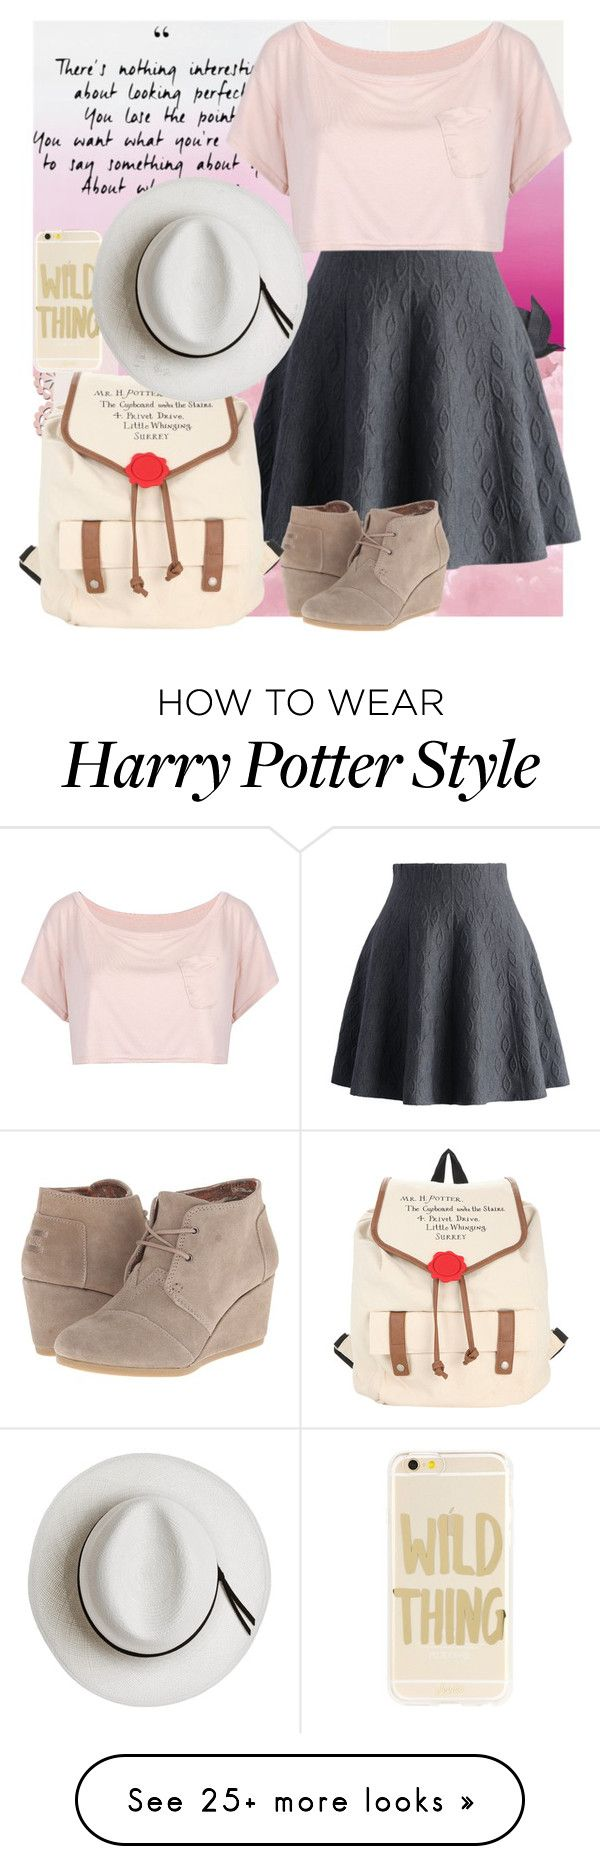 """""""I wanna make you mine, but that's hard to say"""" by c-hood on Polyvore featuring Jayson Home, Chicwish, WithChic, TOMS, Sonix and Calypso Private Label"""